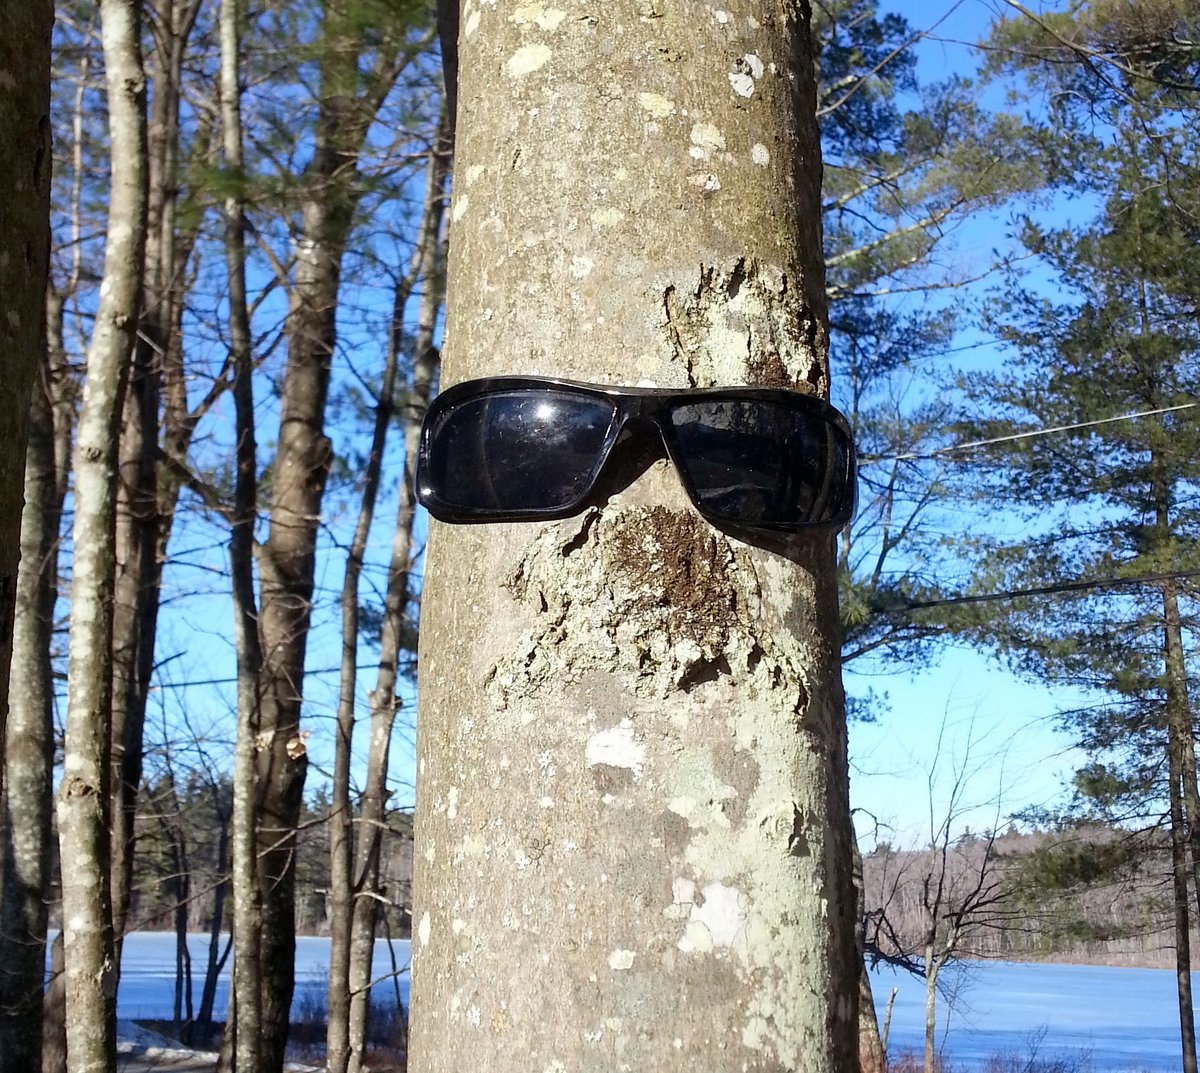 4. Maple with Sunglasses